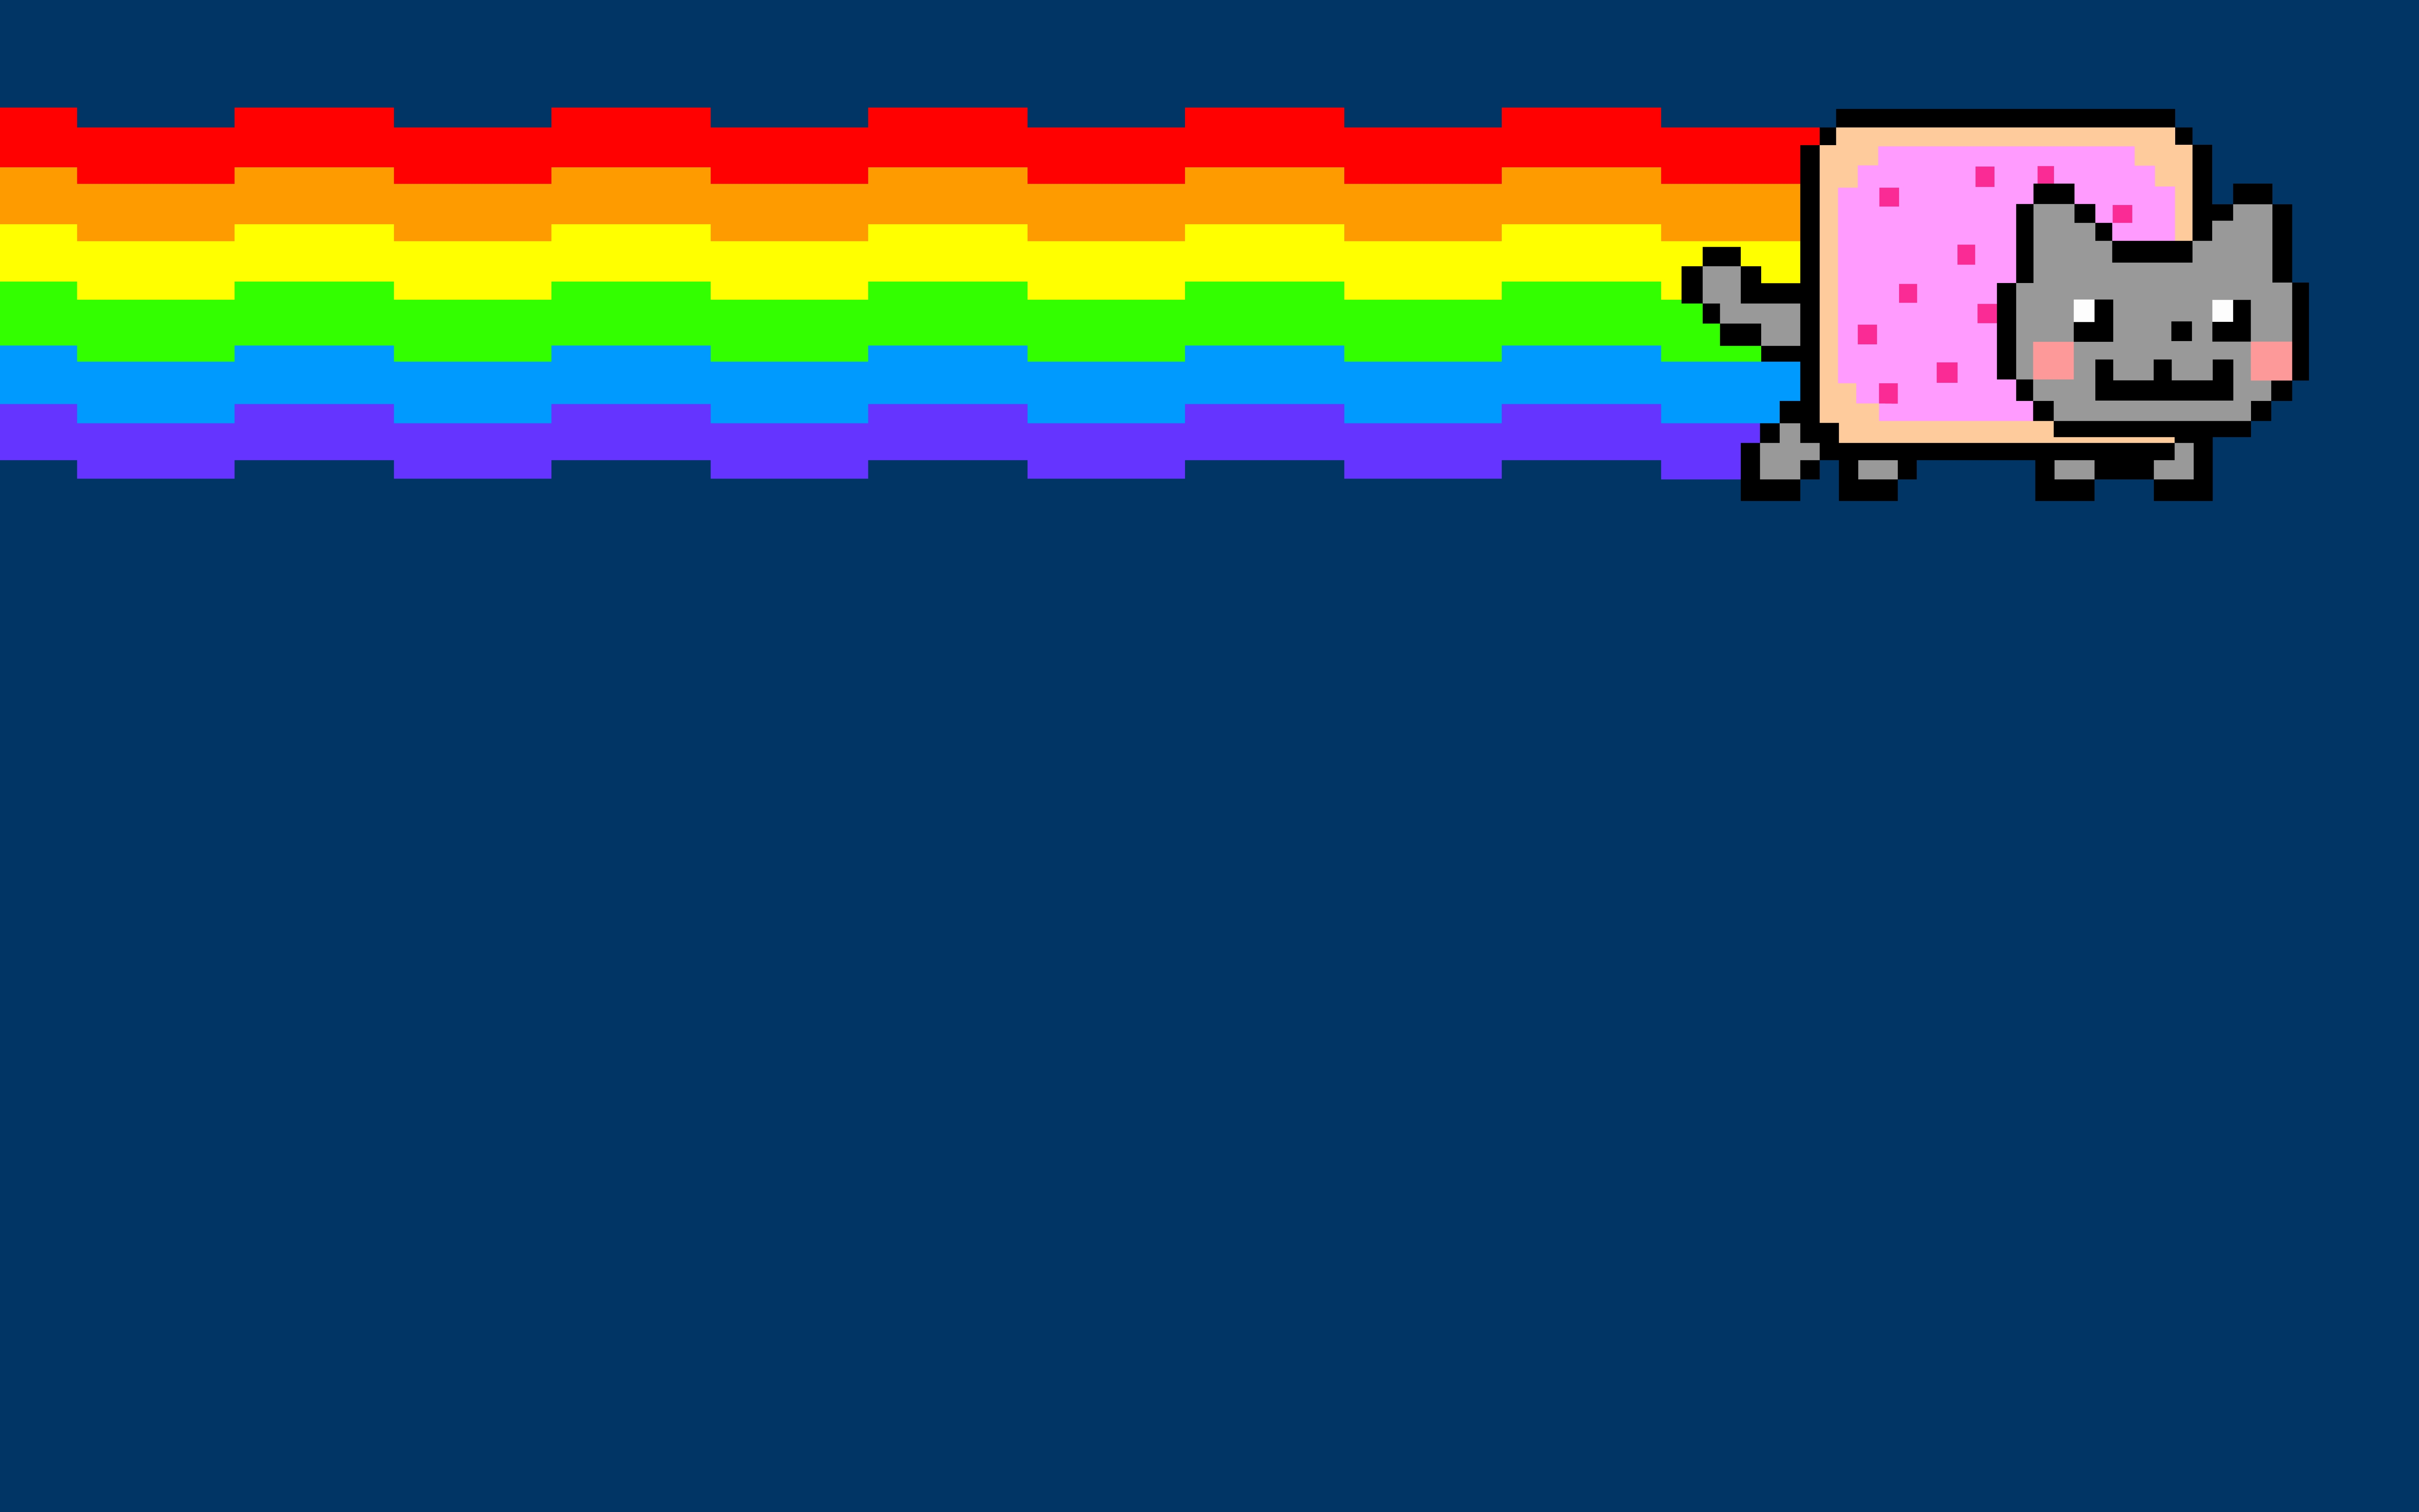 Nyan Cat Backgrounds on Wallpapers Vista